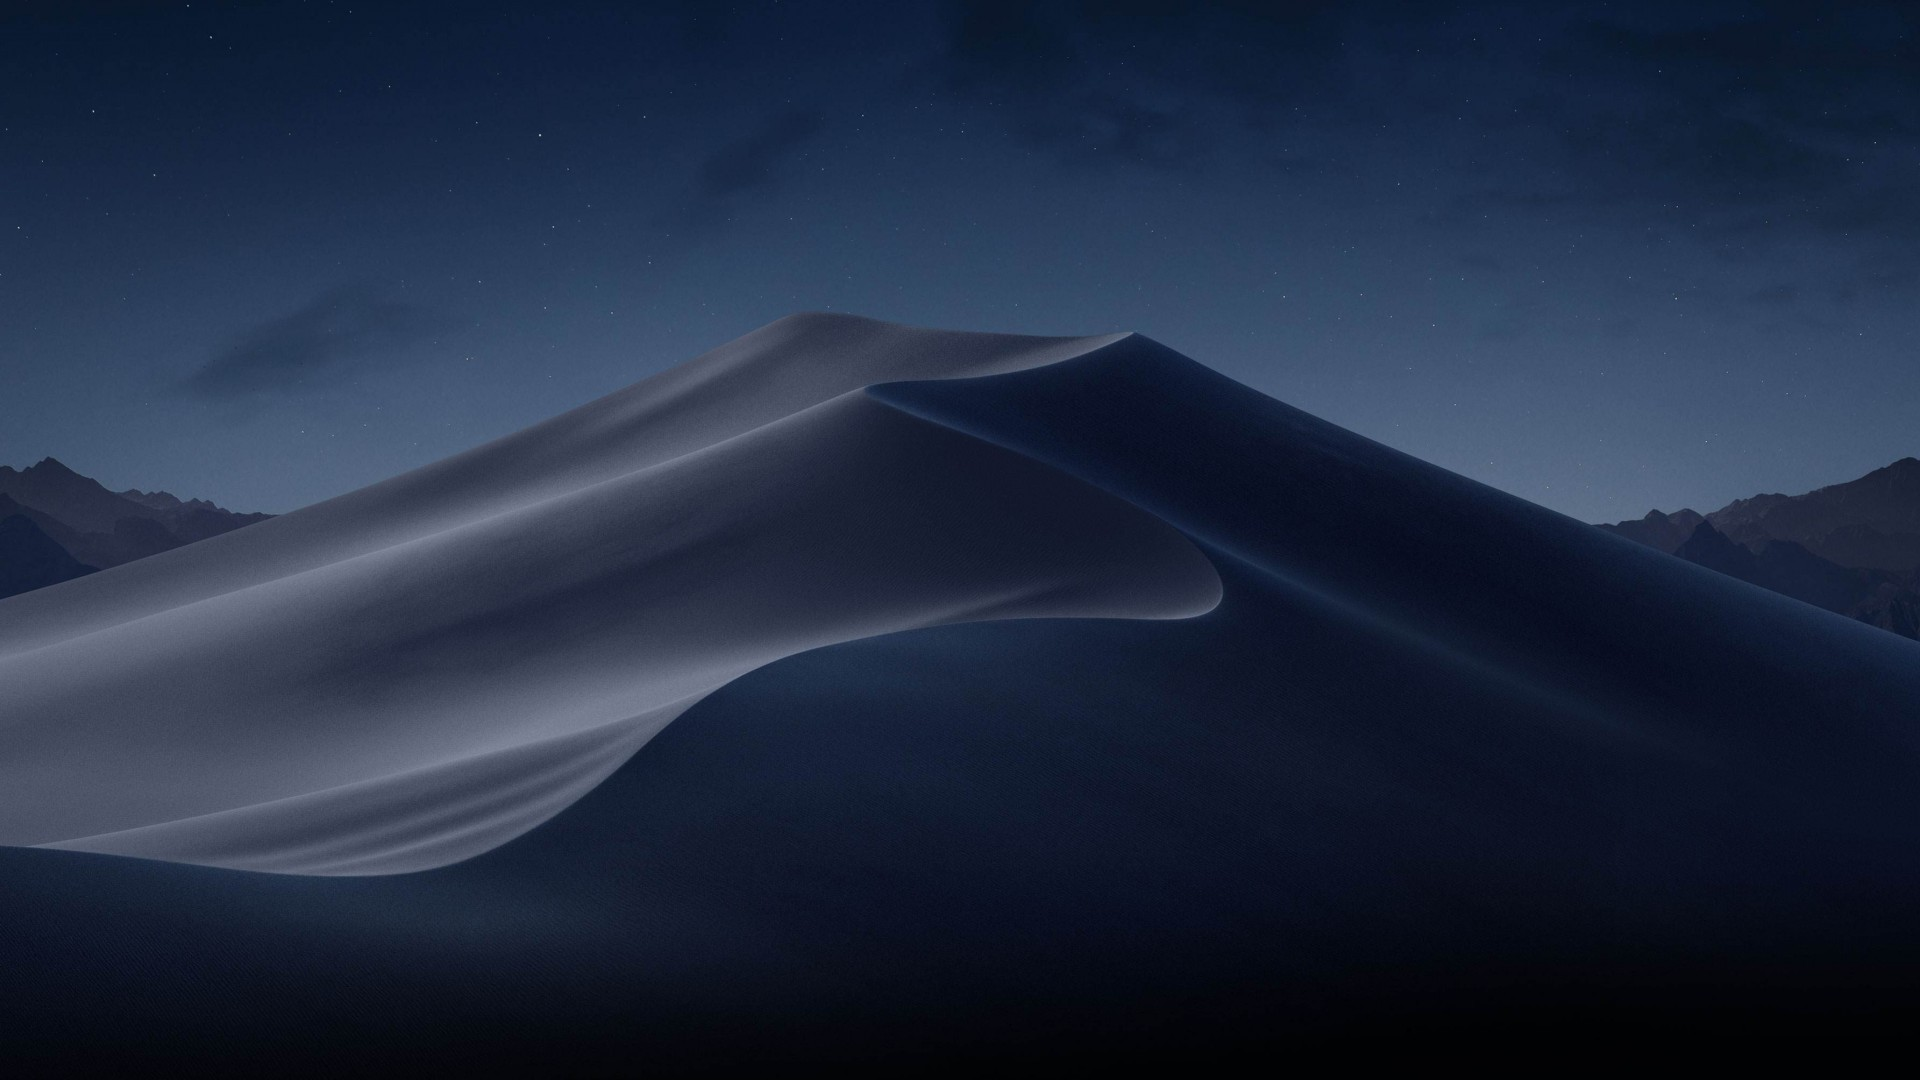 Iphone Wallpaper Book Quotes Wallpaper Macos Mojave Night Dunes Wwdc 2018 4k Os